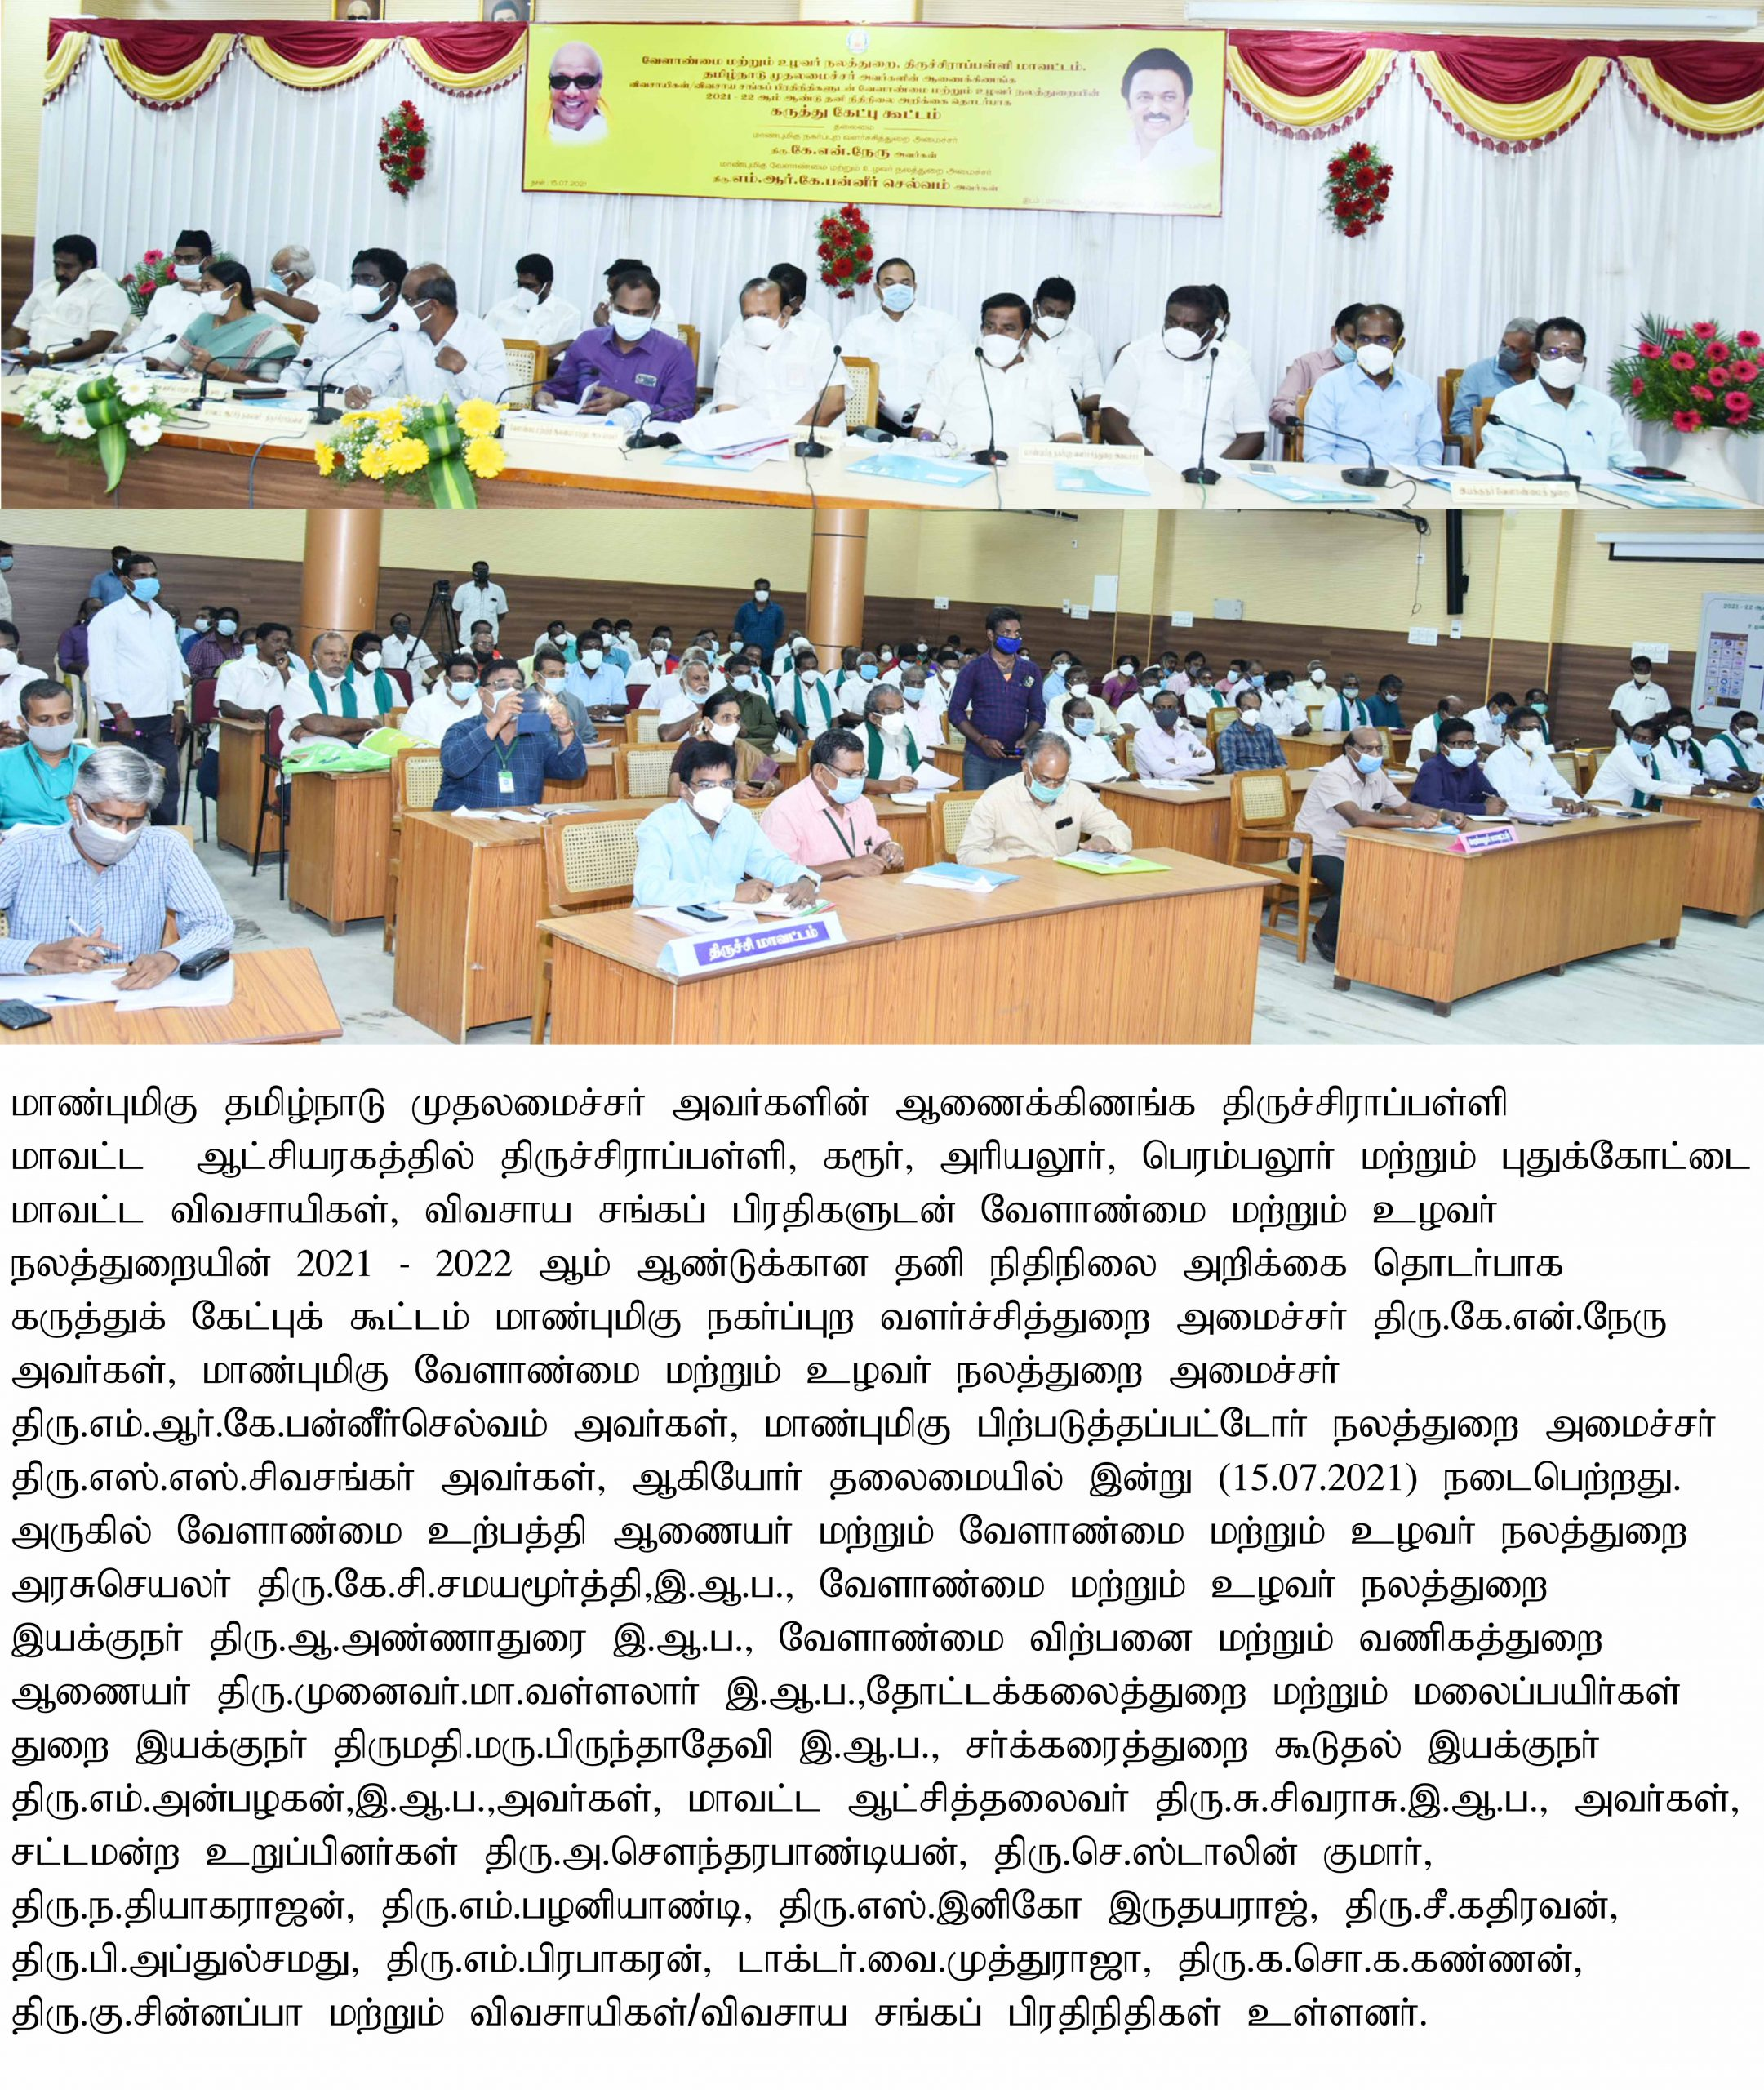 Farmer's meetings was held under thes Chairmanships of Hon'ble Minister on 15-07-2021